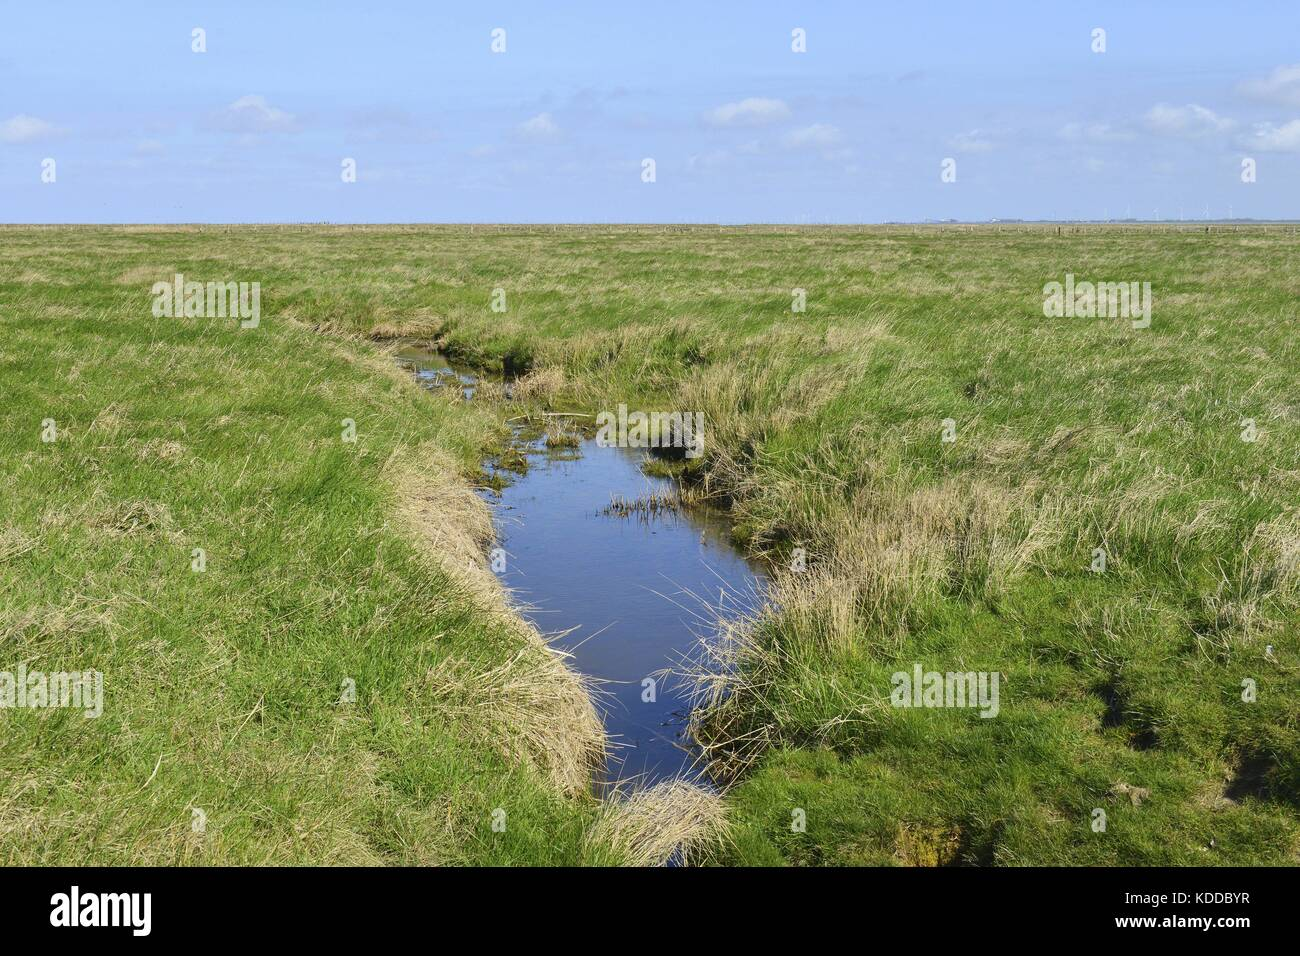 Blue shimmering water hole in a green flat pastureland on the small island Hallig Oland, 21 April 2016 | usage worldwide - Stock Image